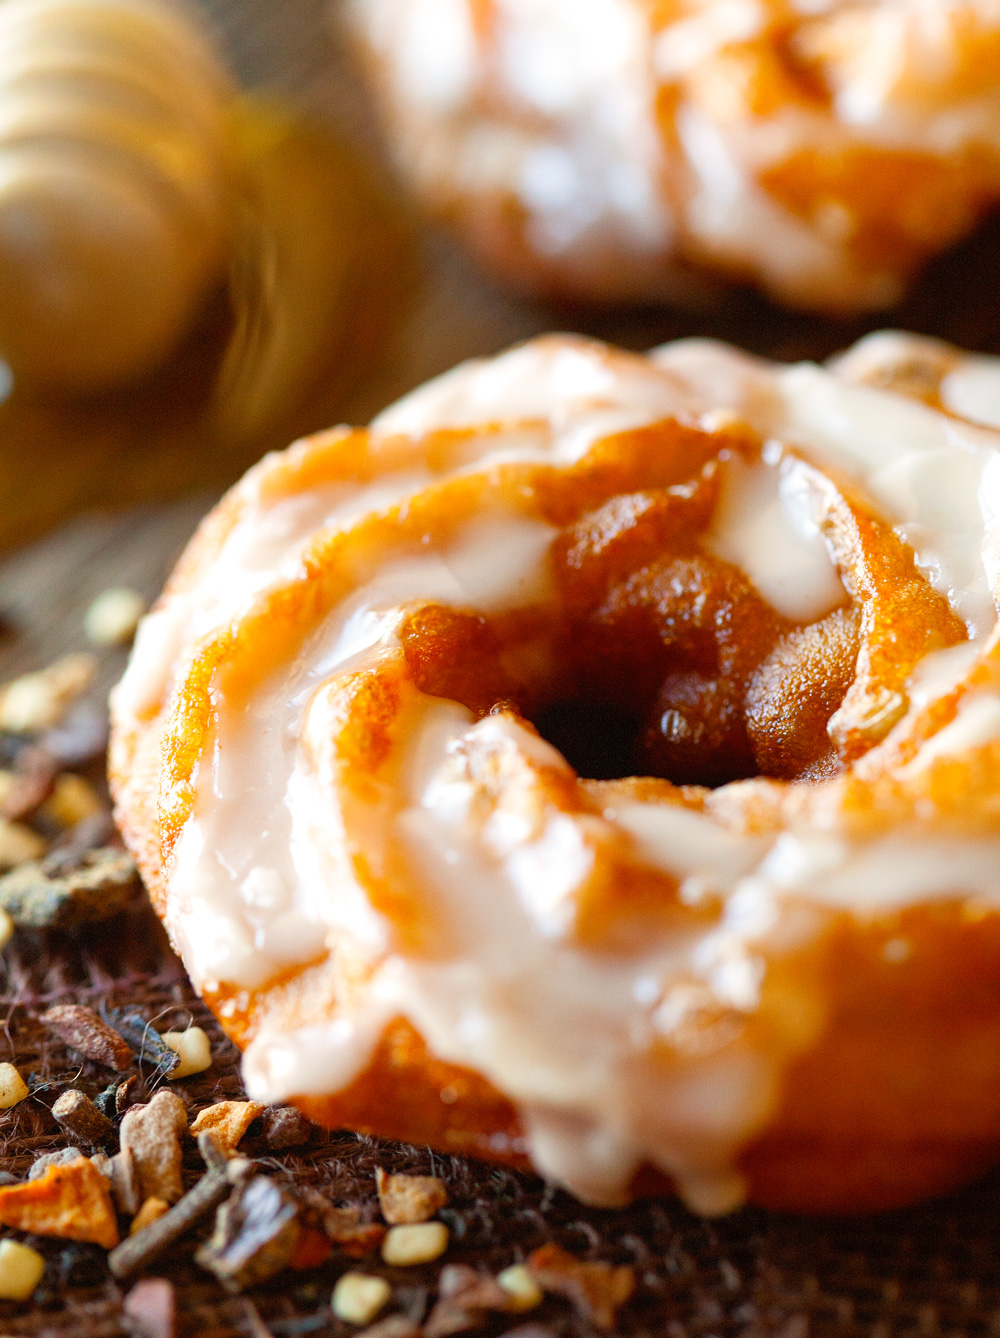 pumpkin-spice-brulee-crullers-with-a-drippy-honey-&-spice-glaze-5